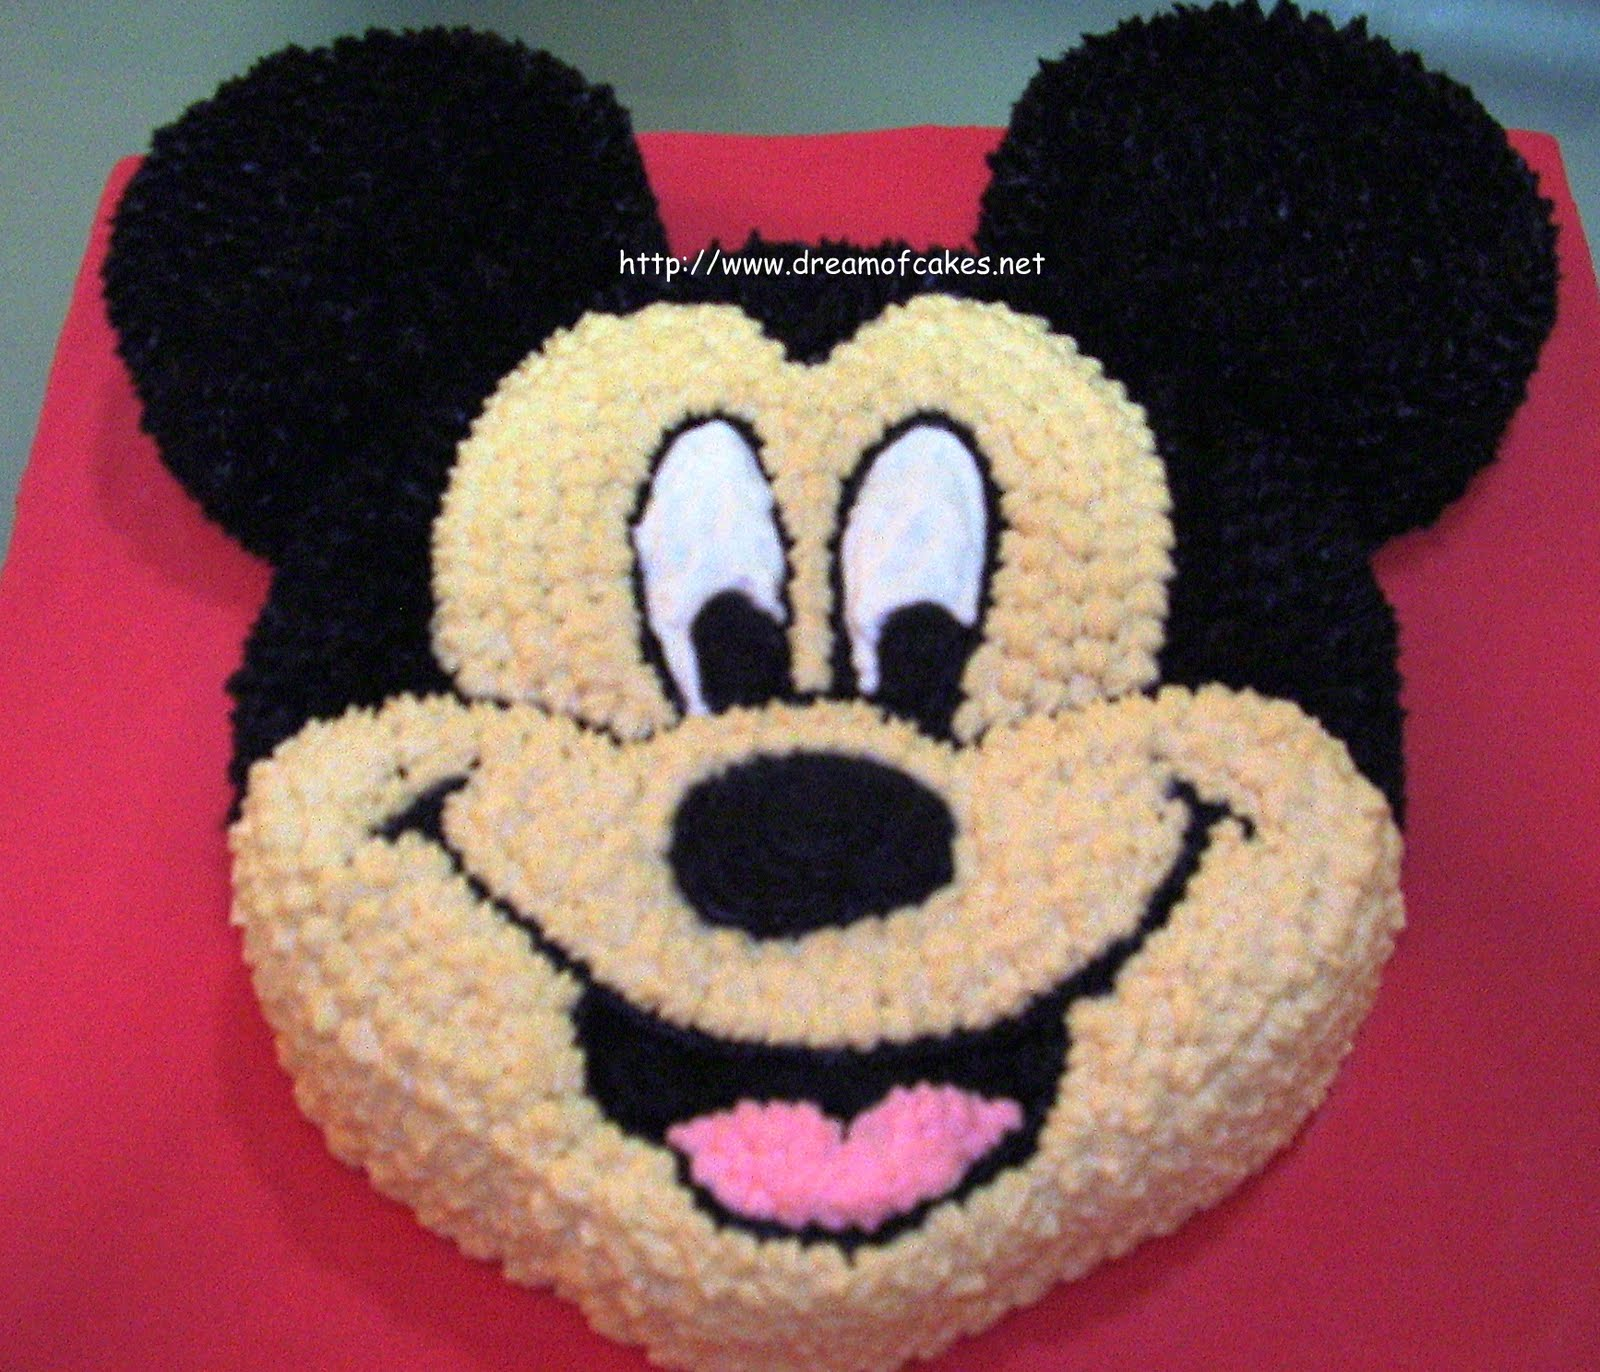 Cake Images Of Mickey Mouse : Dream of Cakes: Mickey Mouse Birthday Cake